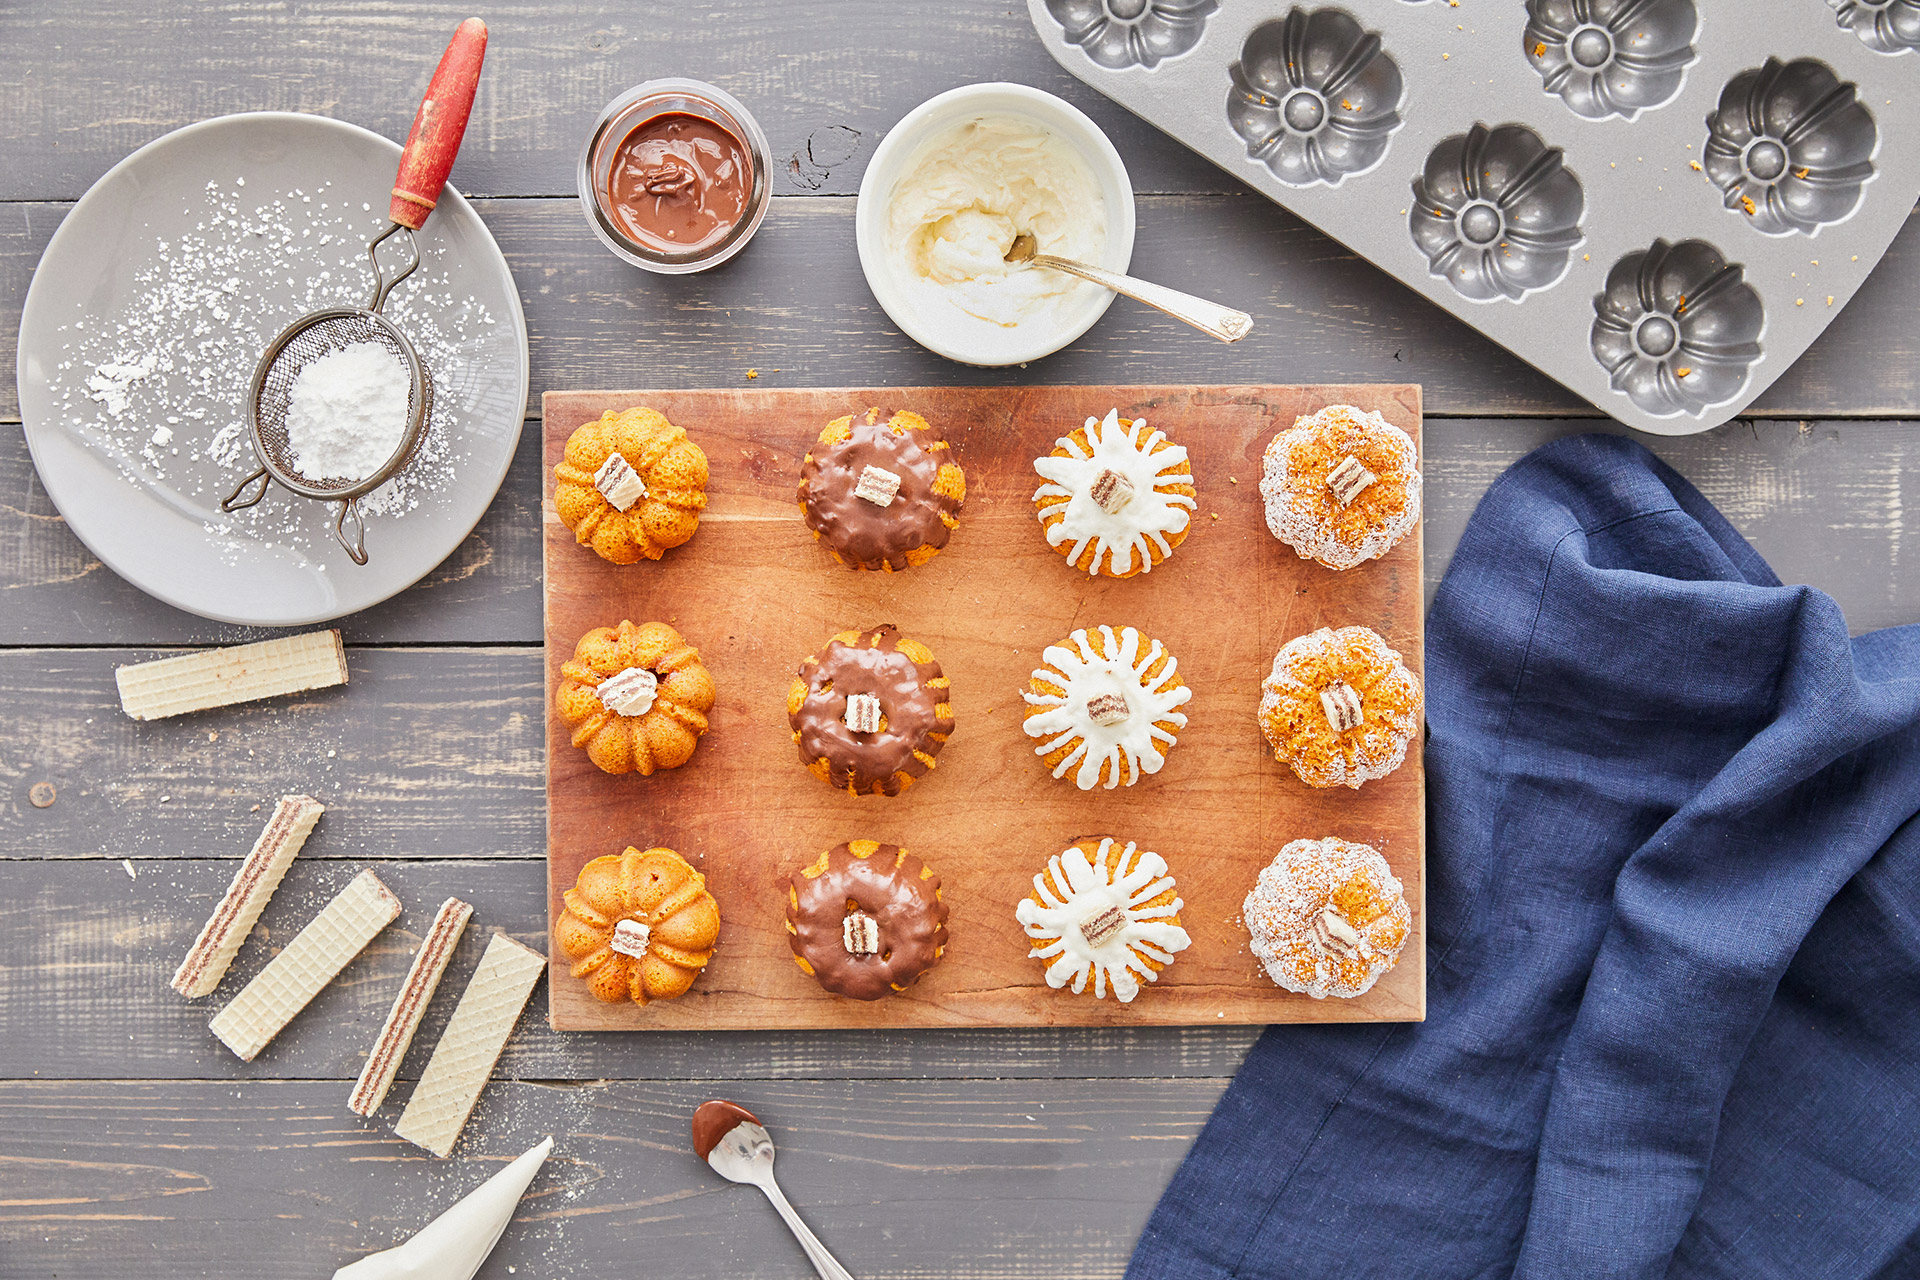 These Sweet Little Pumpkin Cakes Are the Ultimate Fall Dessert